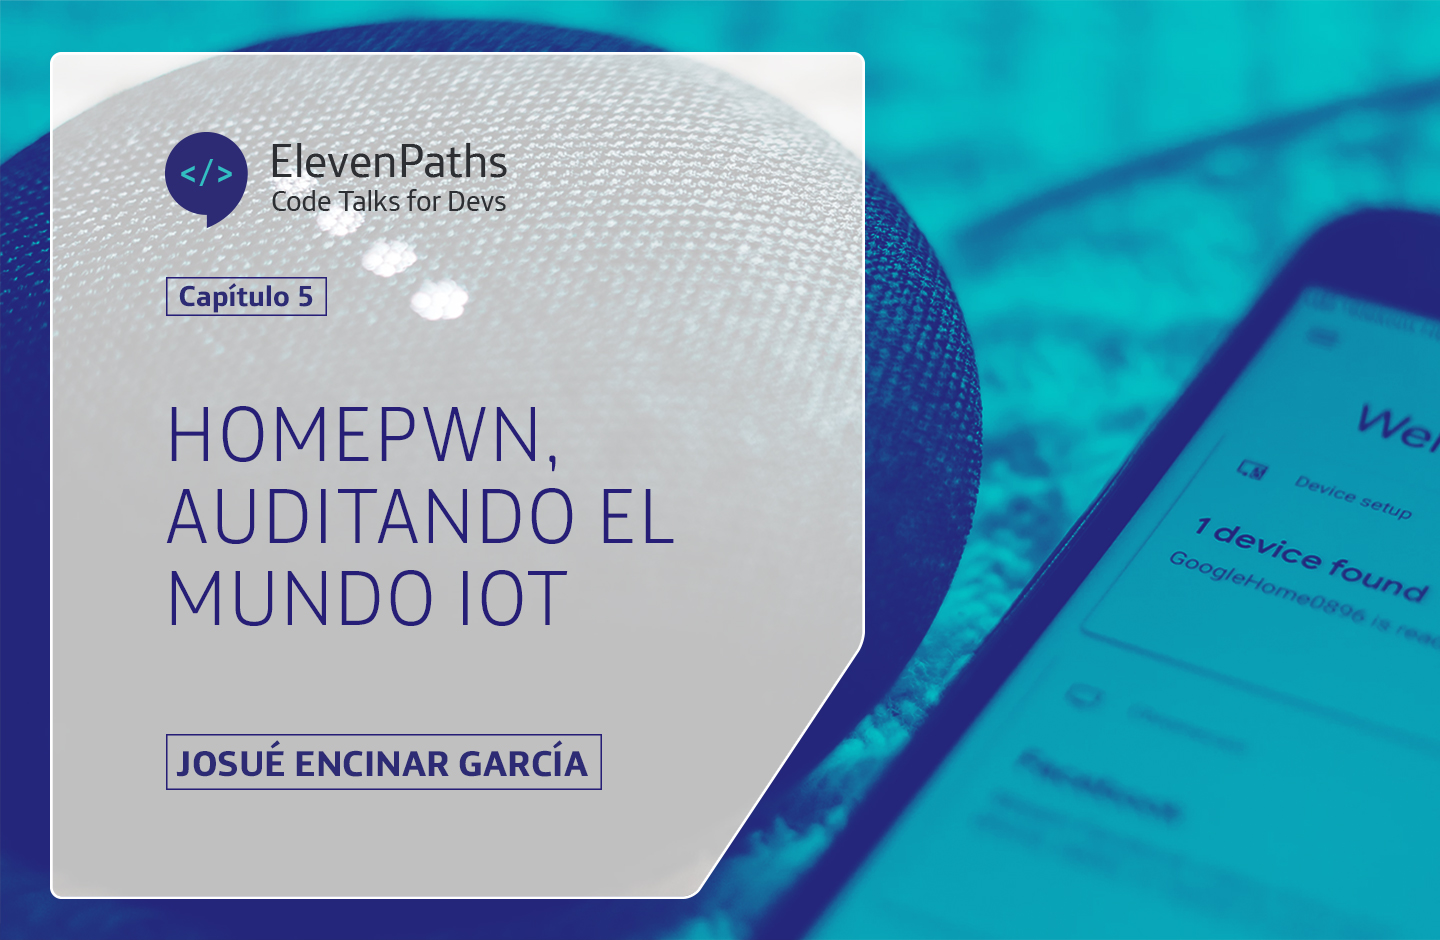 Code Talks for Devs – HomePwn, auditando el mundo IoT